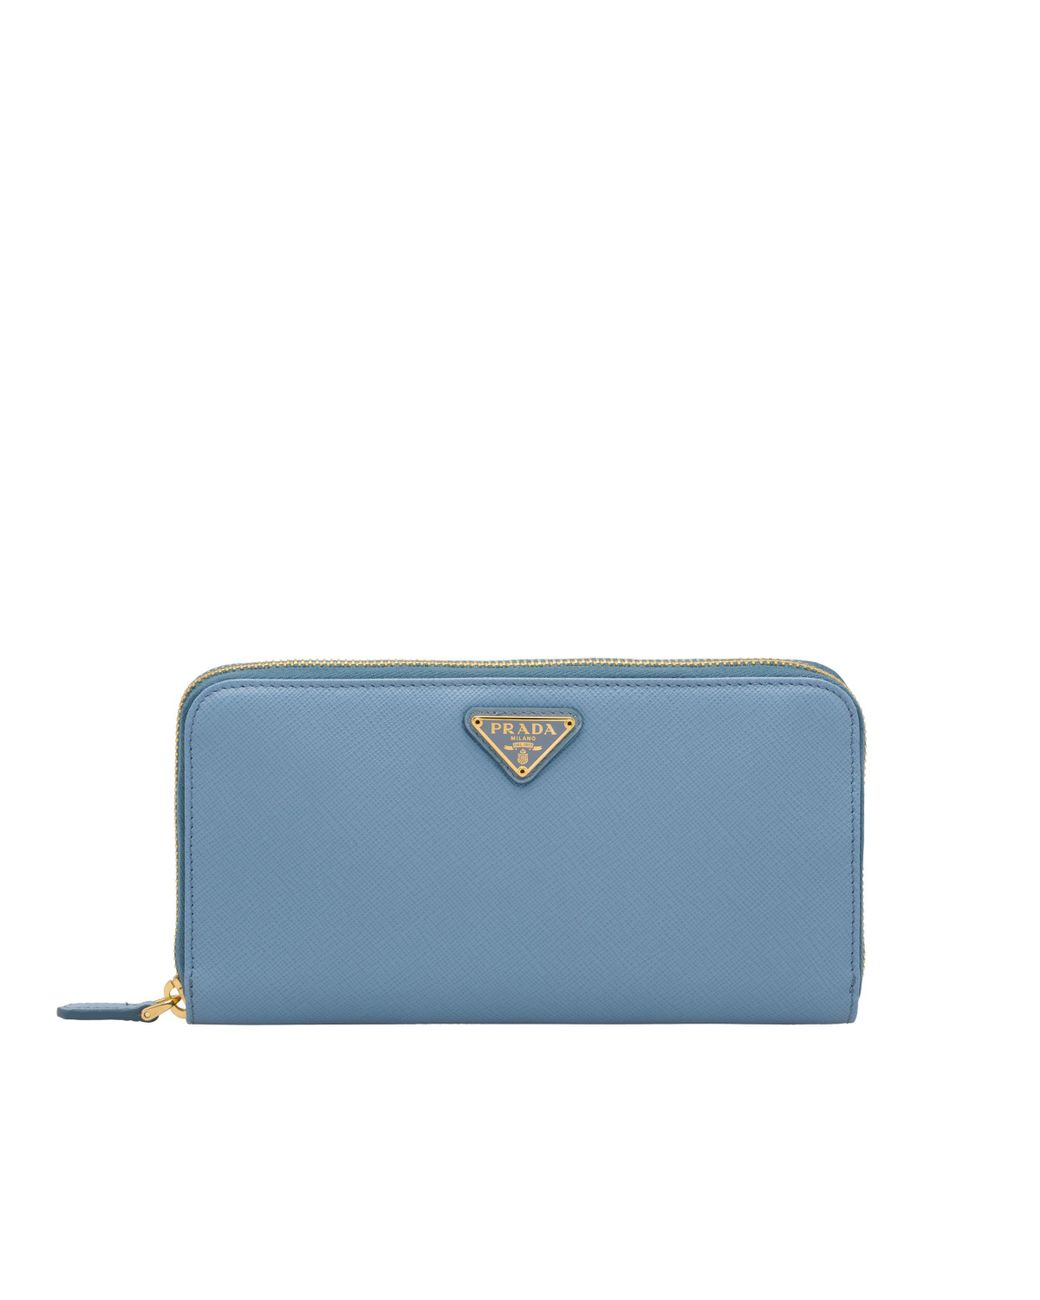 81c7cc3b20e3 Lyst - Prada Large Saffiano Leather Wallet in Blue